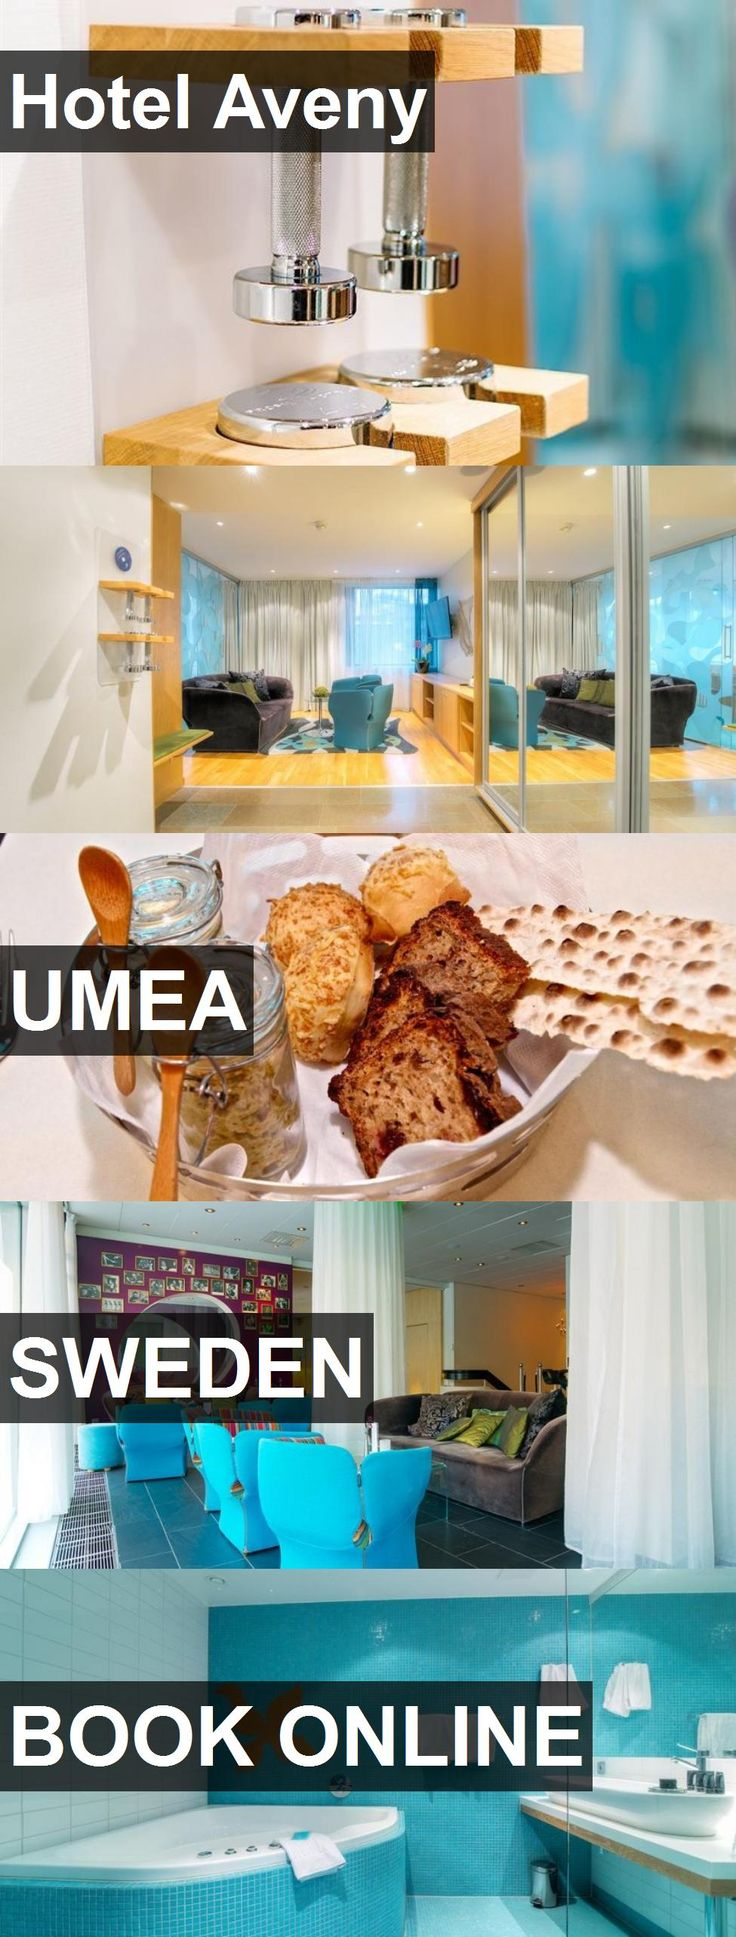 Hotel Aveny in Umea, Sweden. For more information, photos, reviews and best prices please follow the link. #Sweden #Umea #travel #vacation #hotel